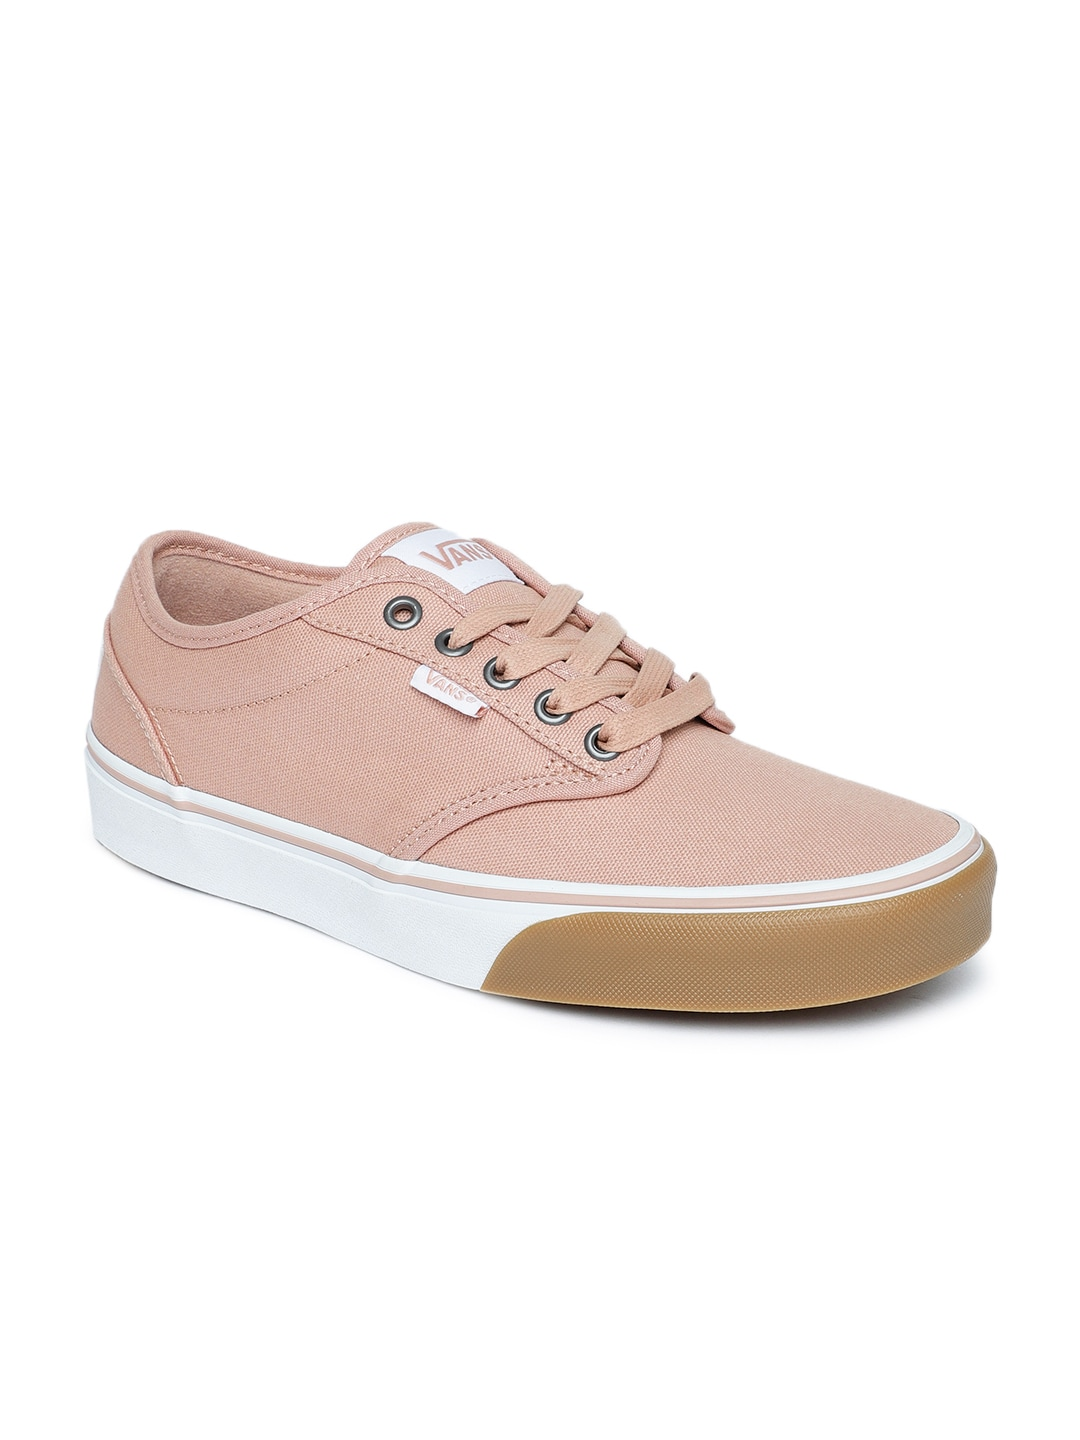 bcb03e6f4f11 Vans Casual Shoes - Buy Vans Casual Shoes Online in India